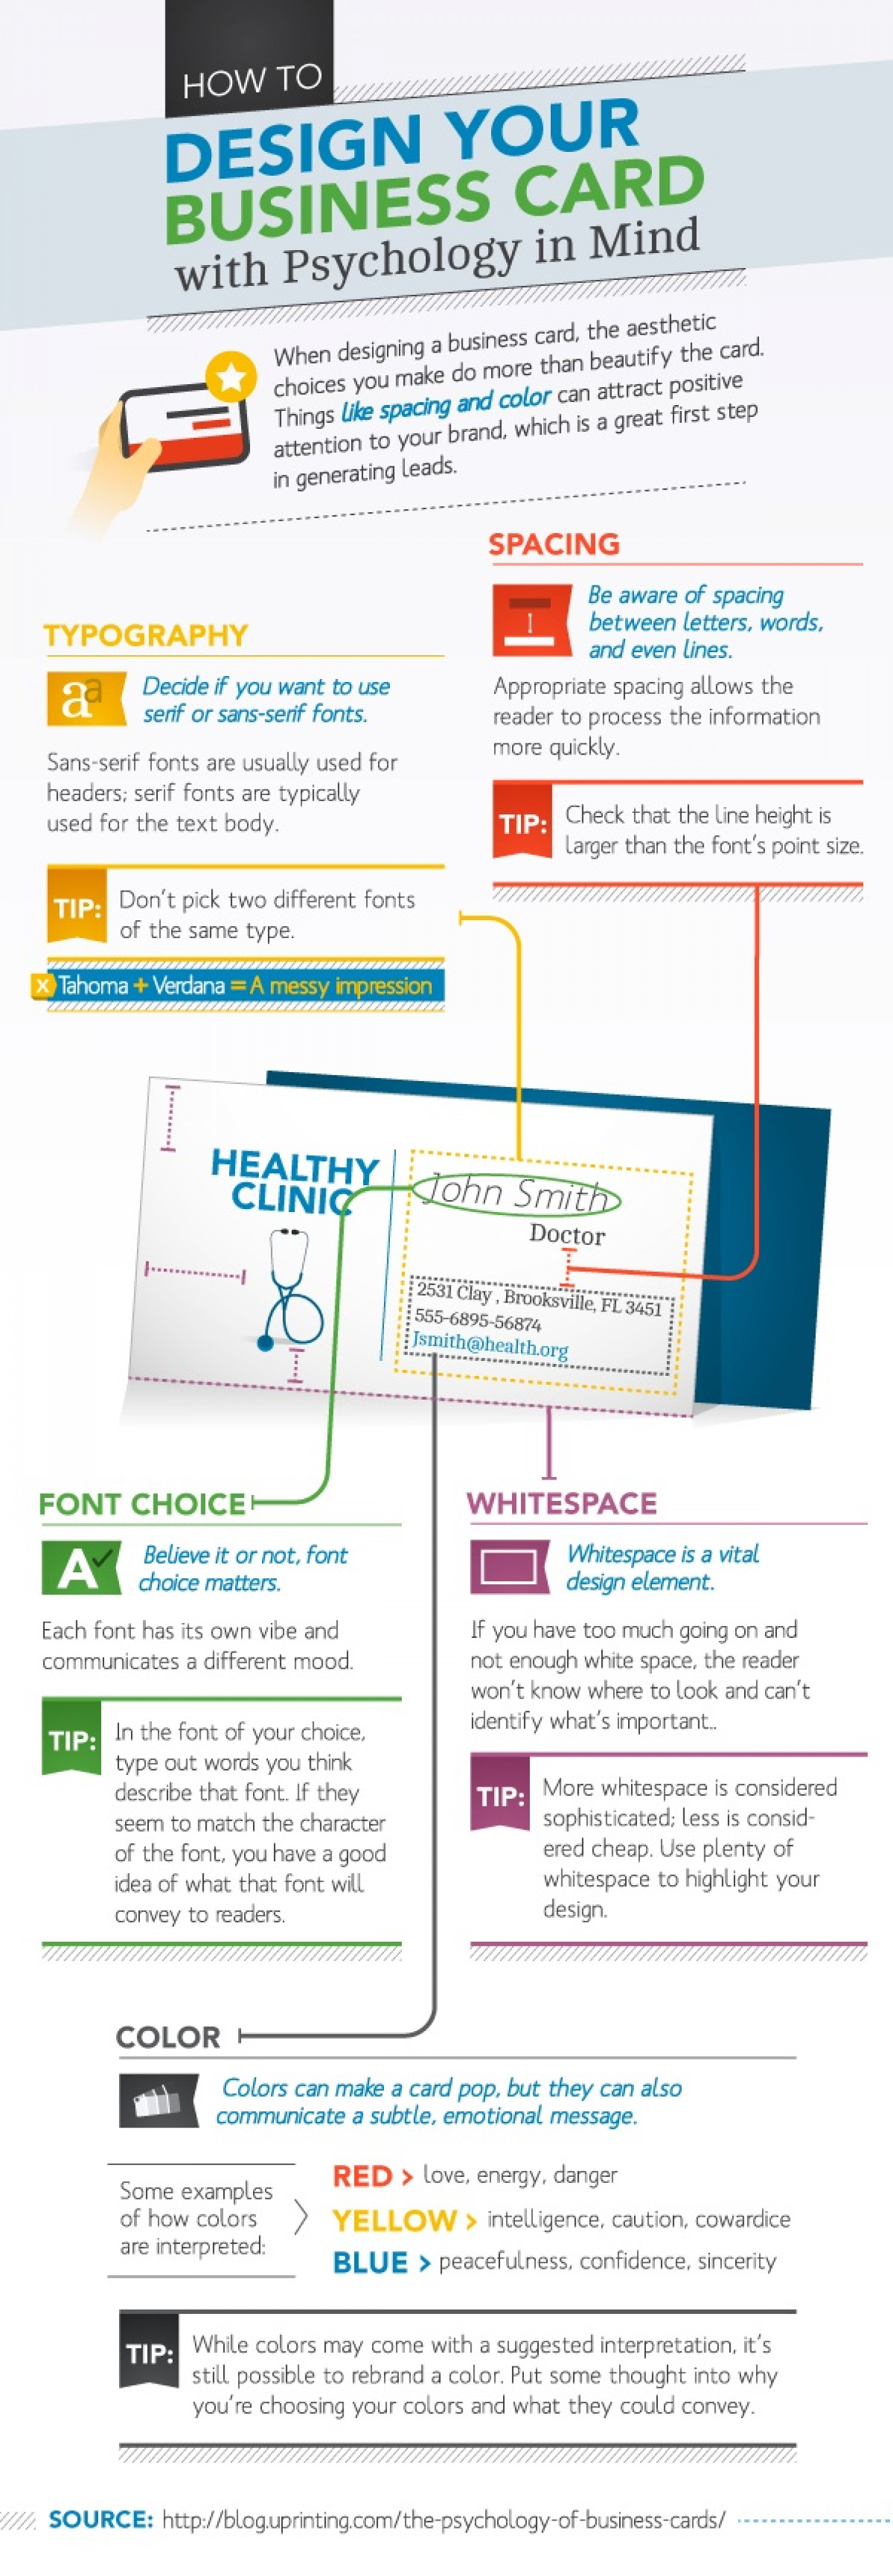 How to Design Your Business Card with Psychology in Mind Infographic